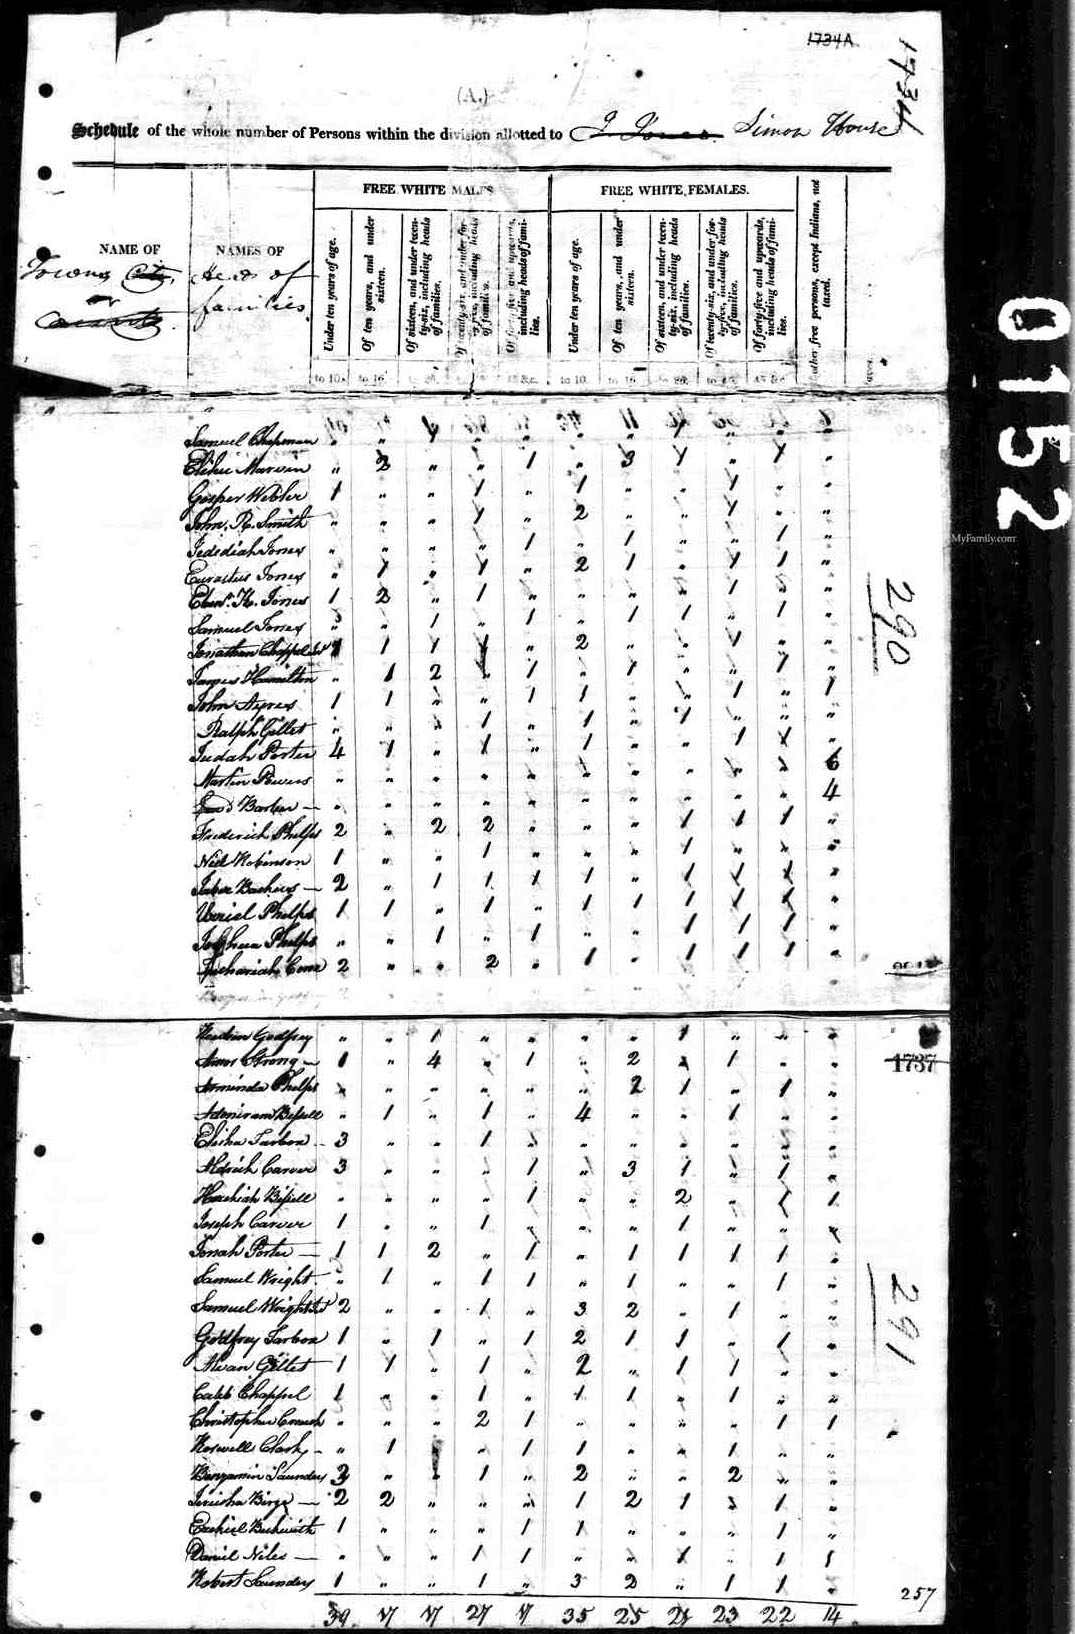 1810 Census record